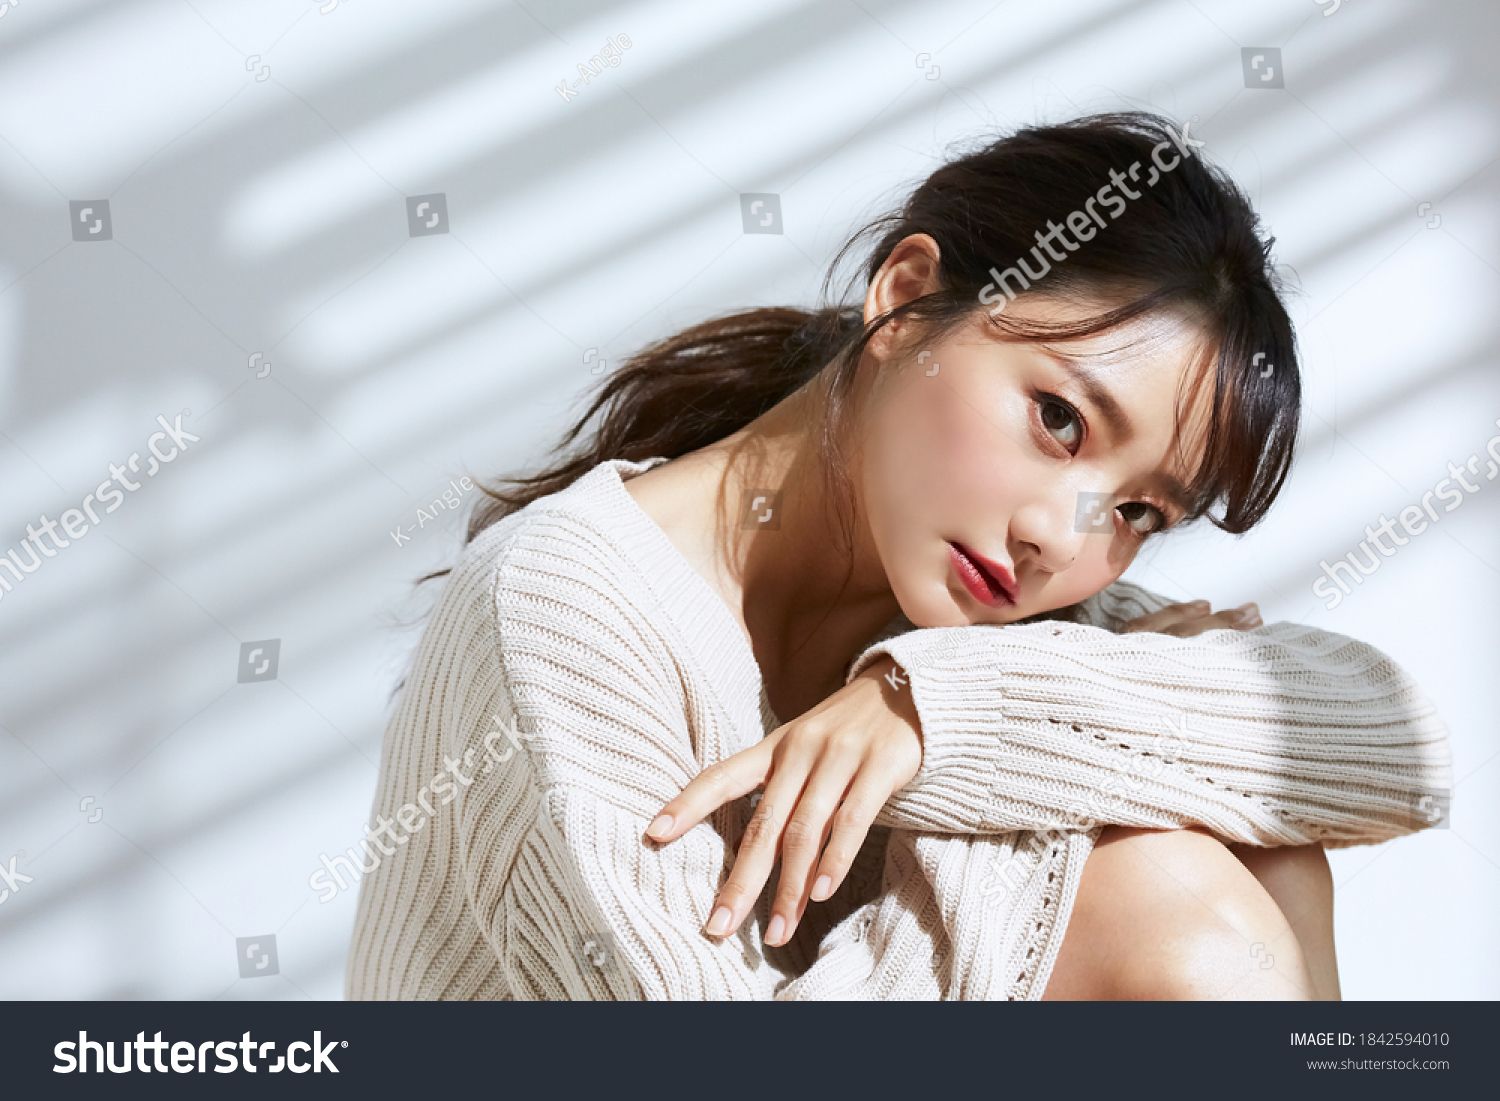 Beauty portrait of young Asian women on light and shadow background #1842594010